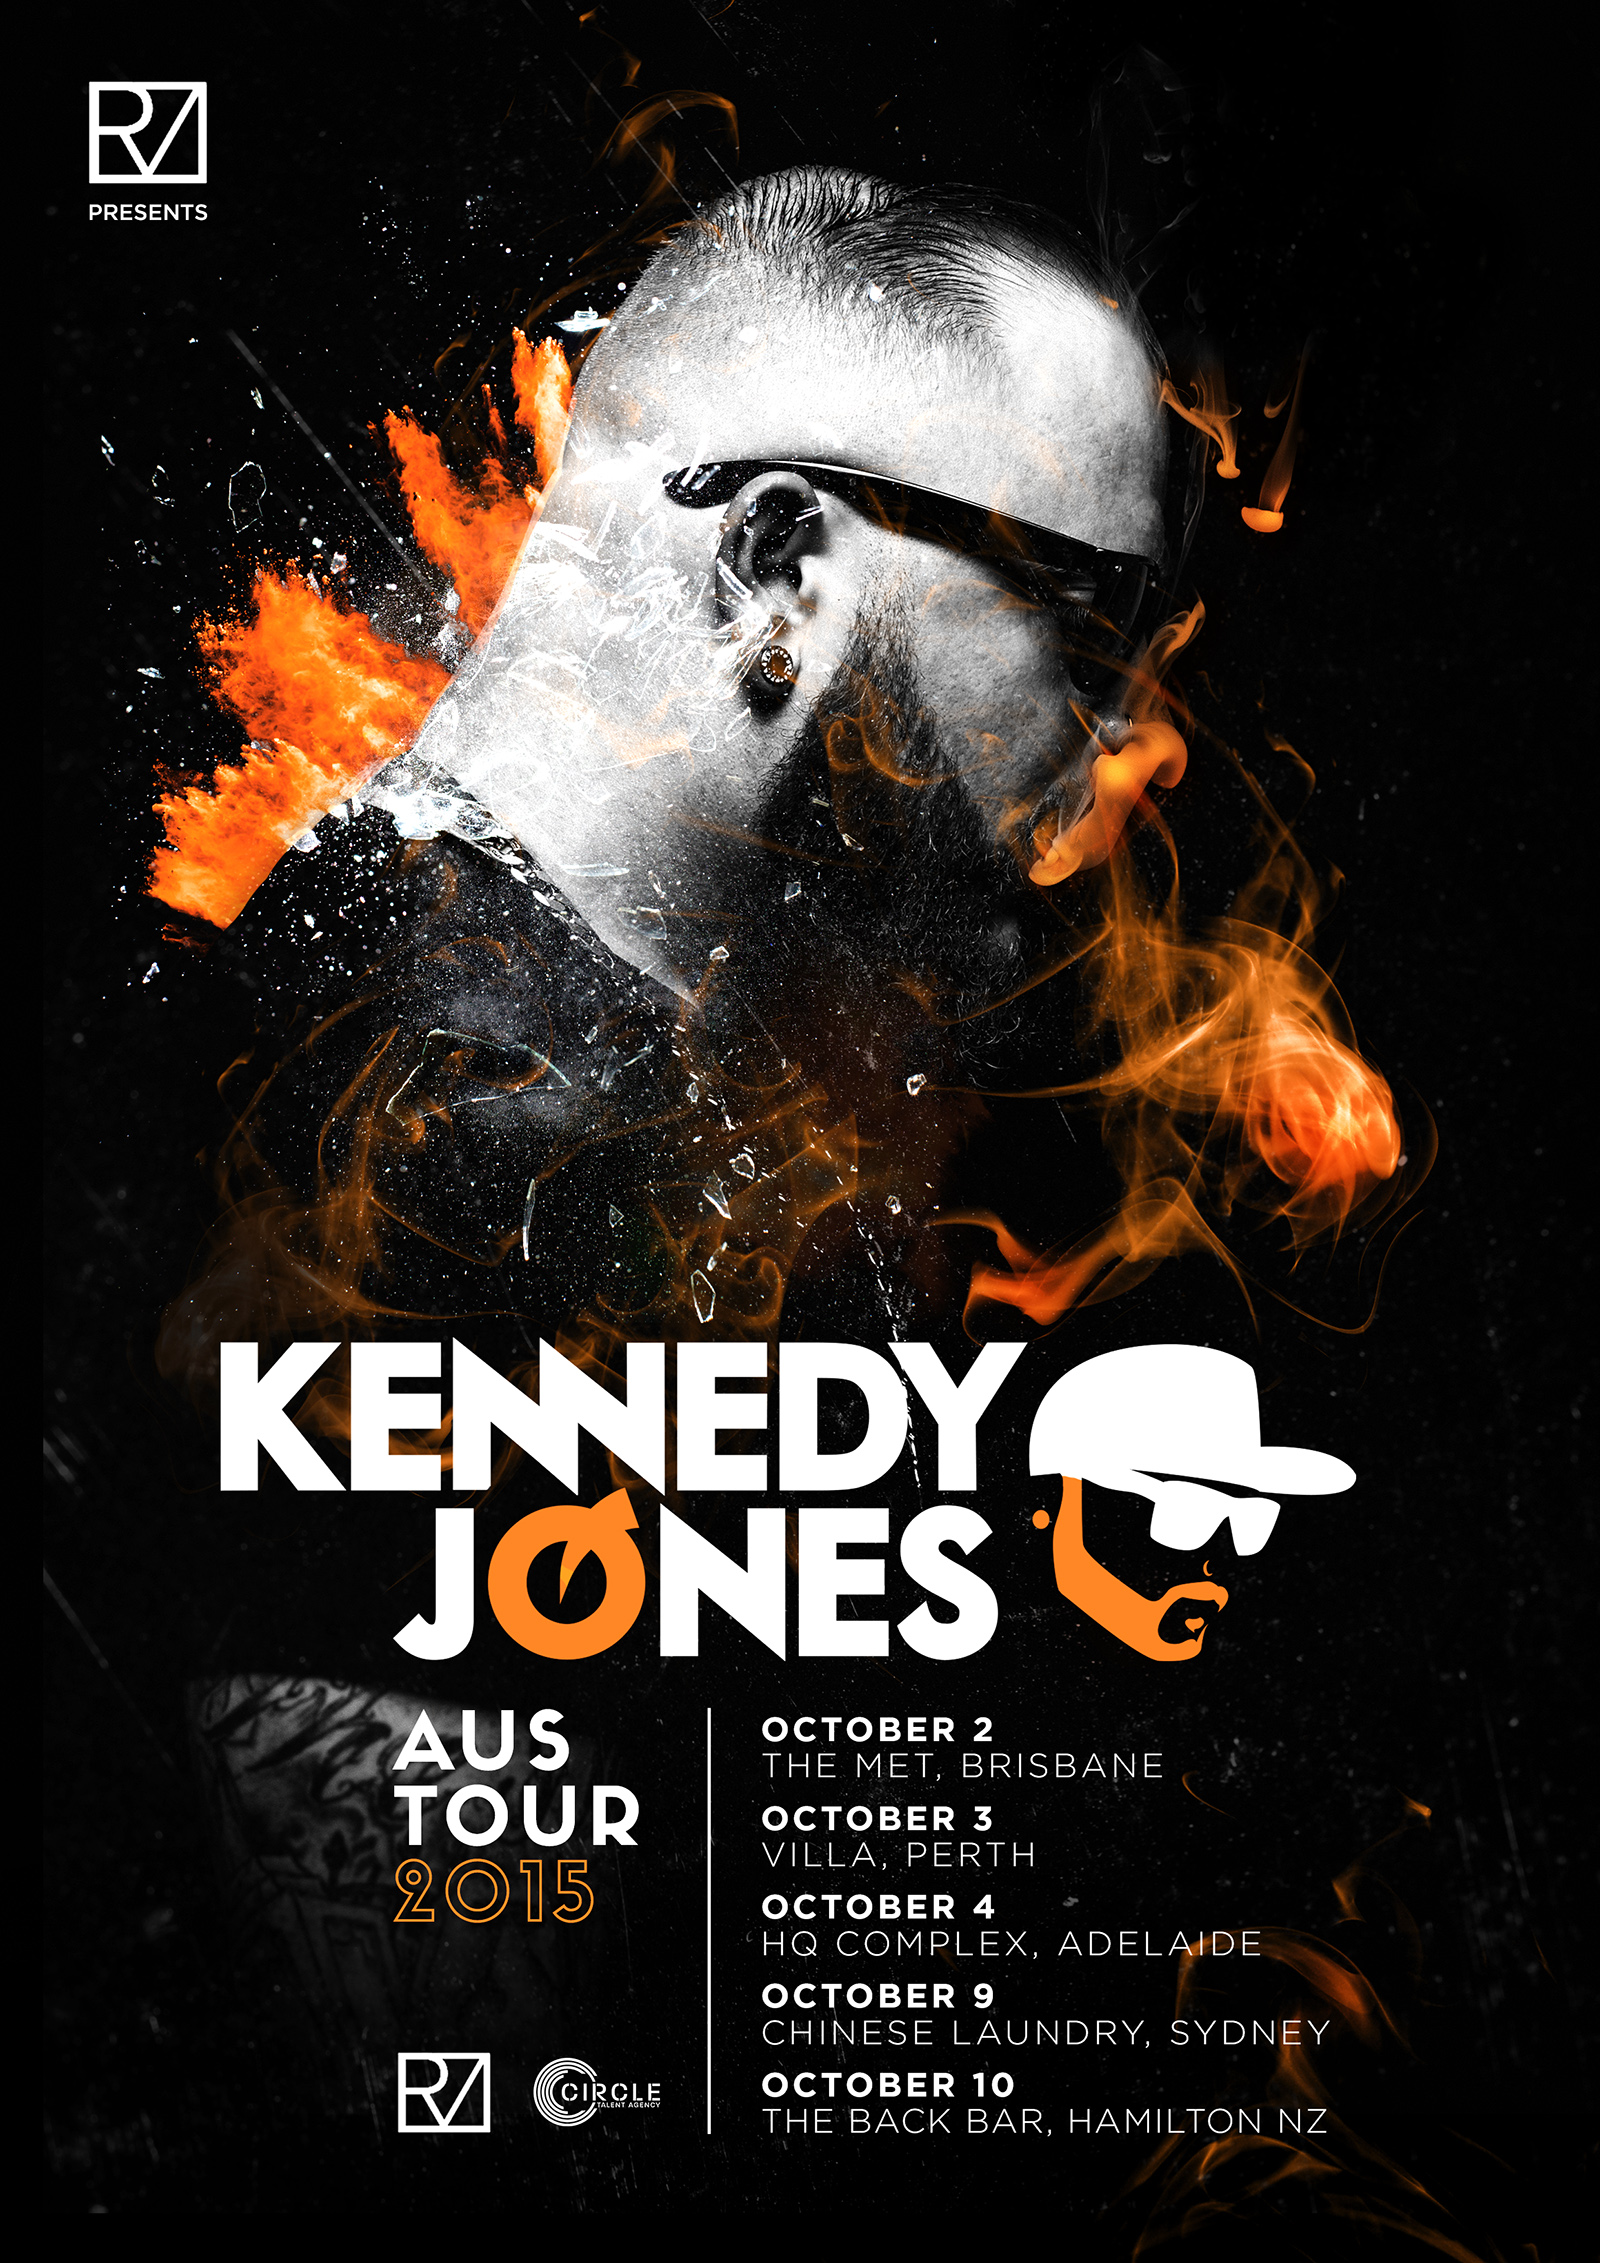 Kennedy Jones Tour Art